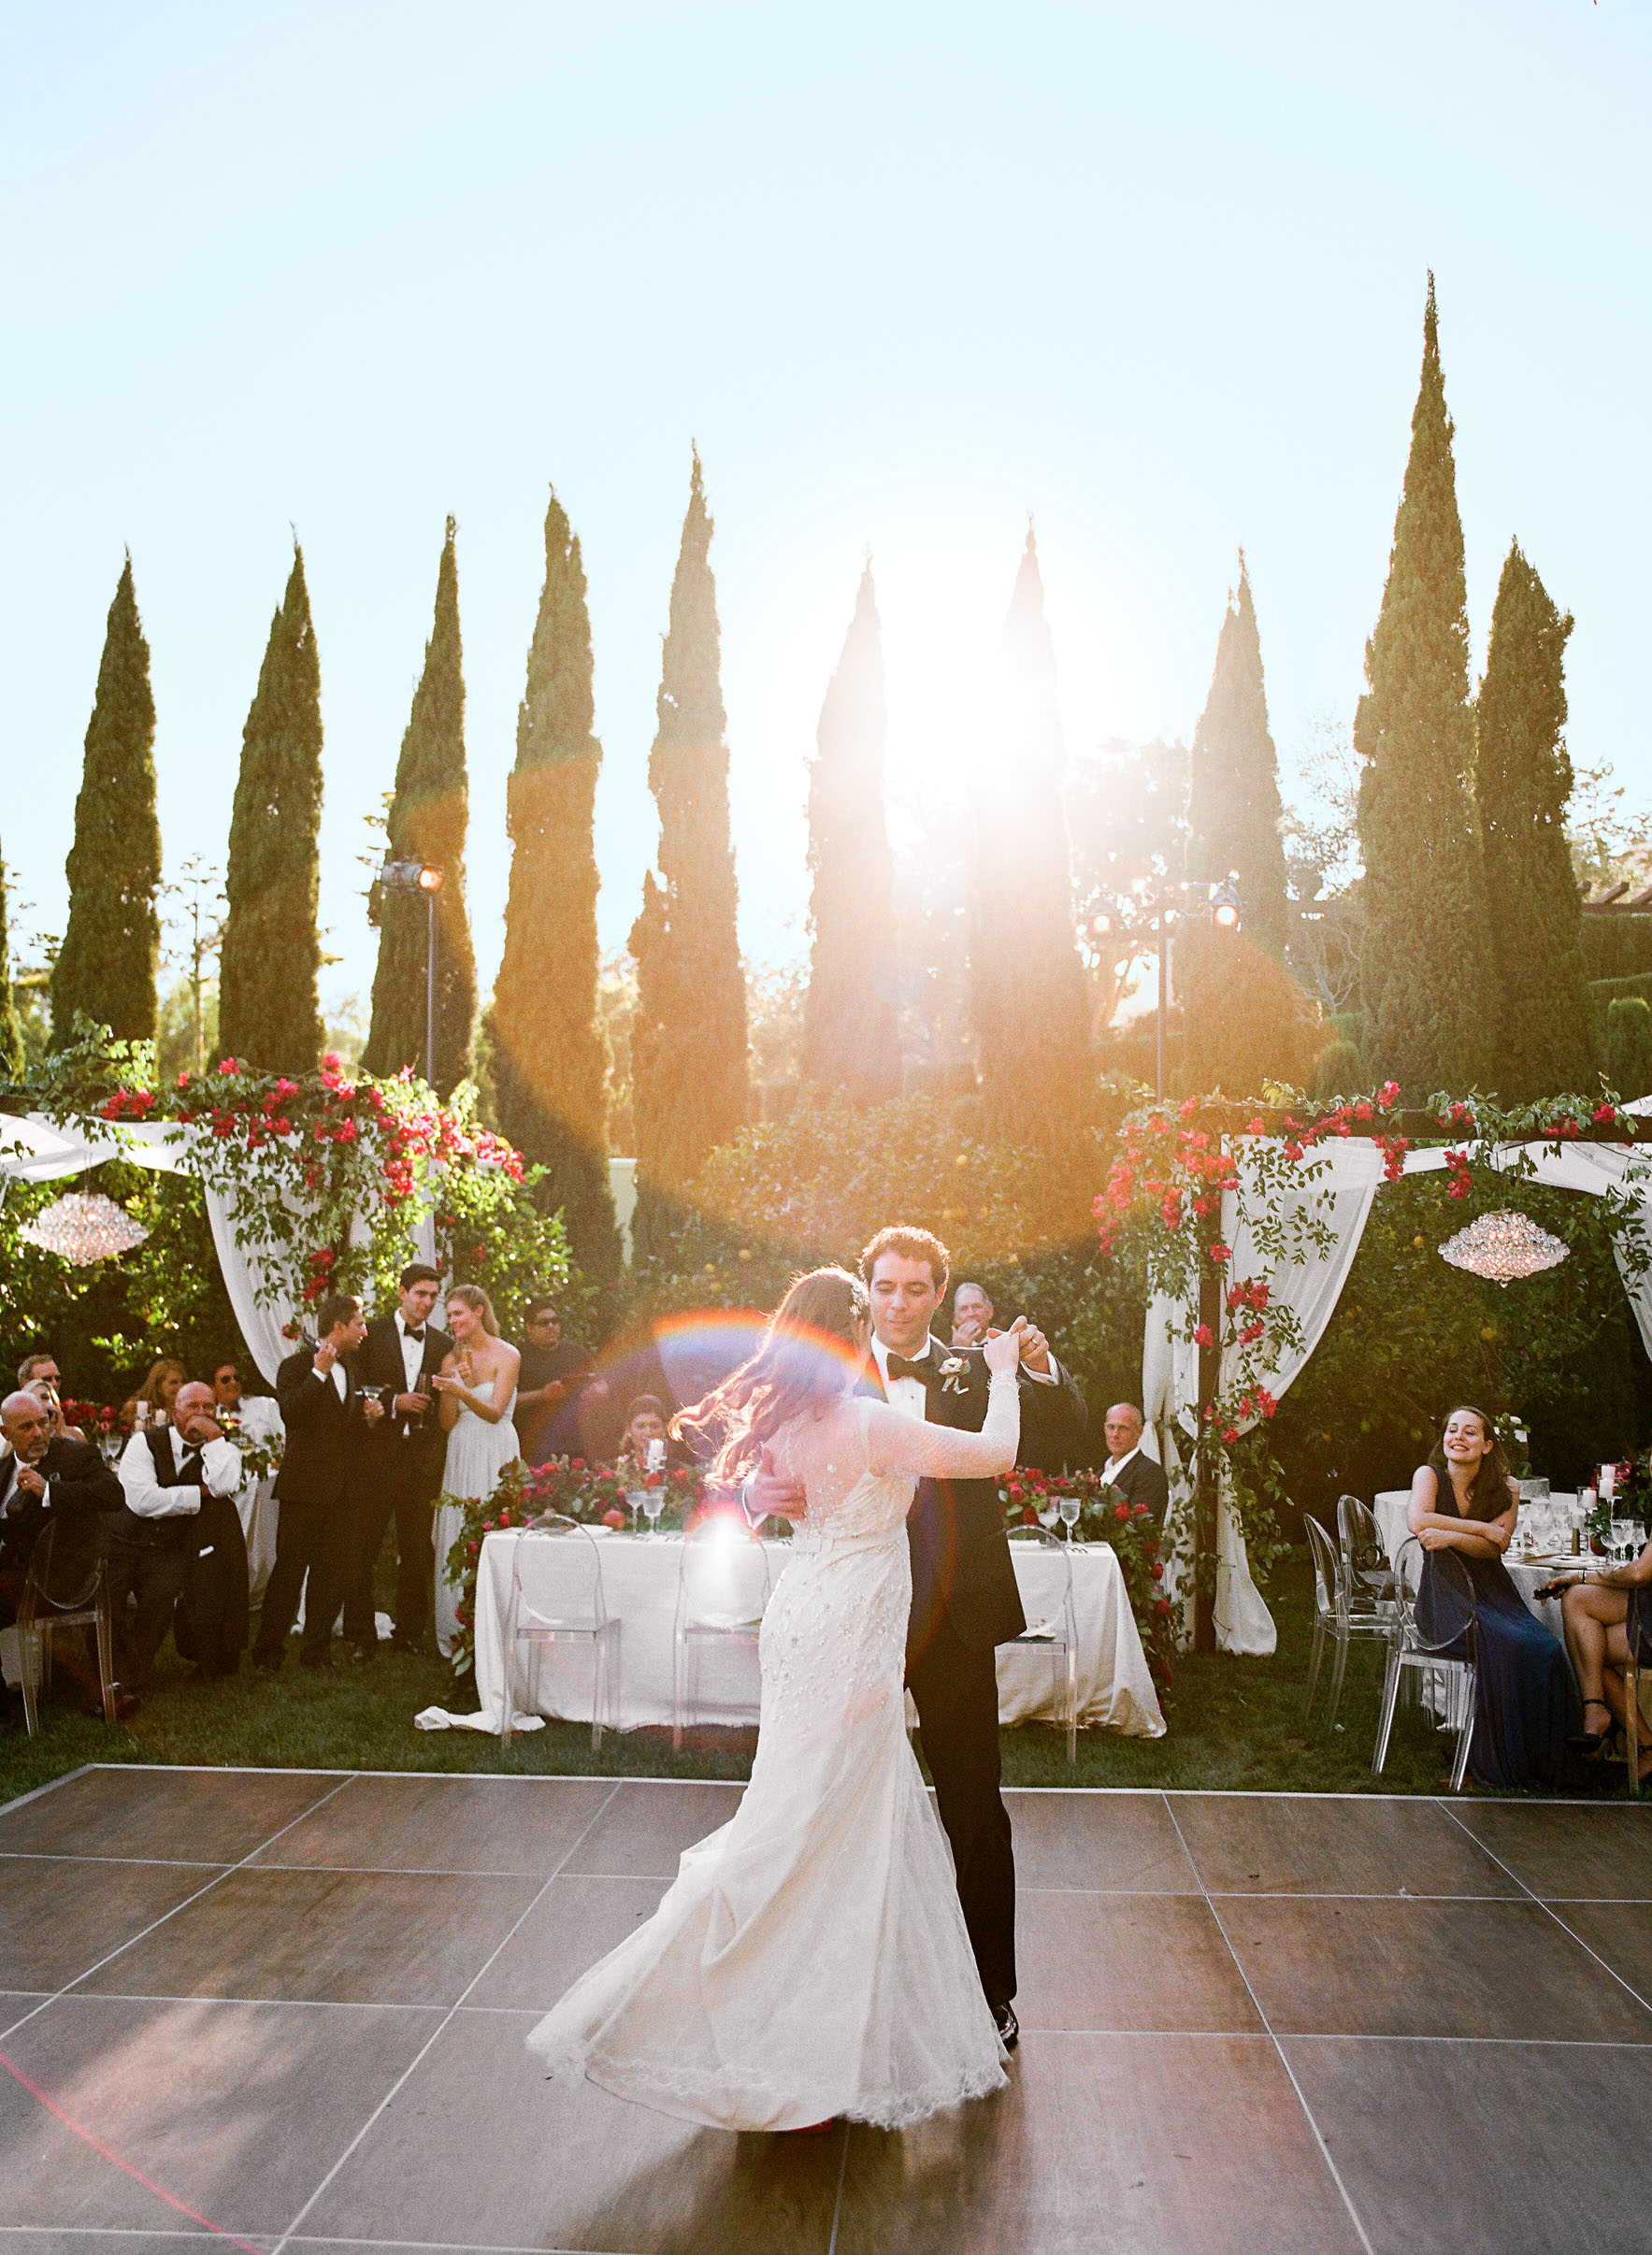 10 First Dance Song Ideas from Your Parents' Era